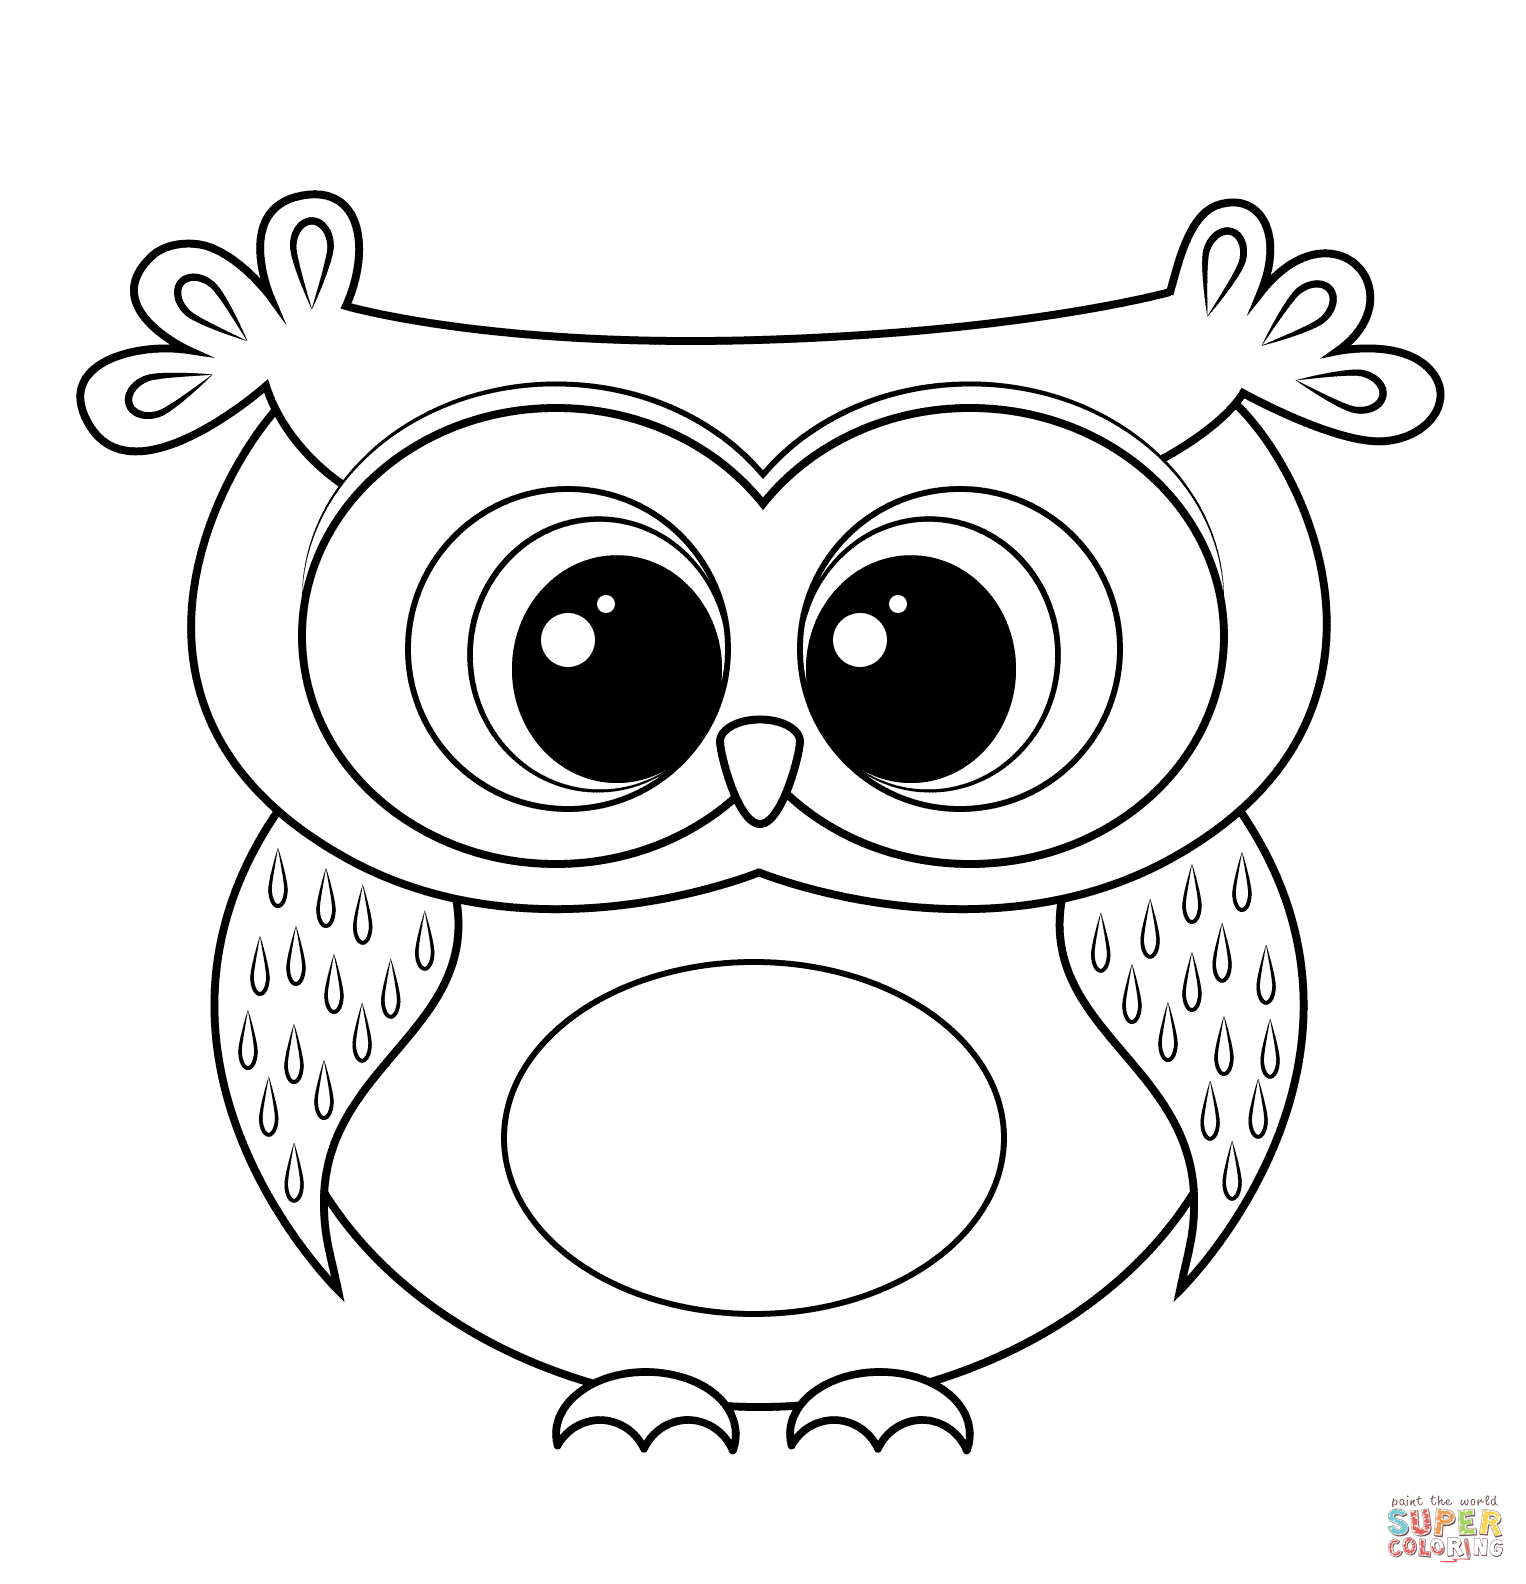 44 Top Cartoon Owl Coloring Pages To Print , Free HD Download